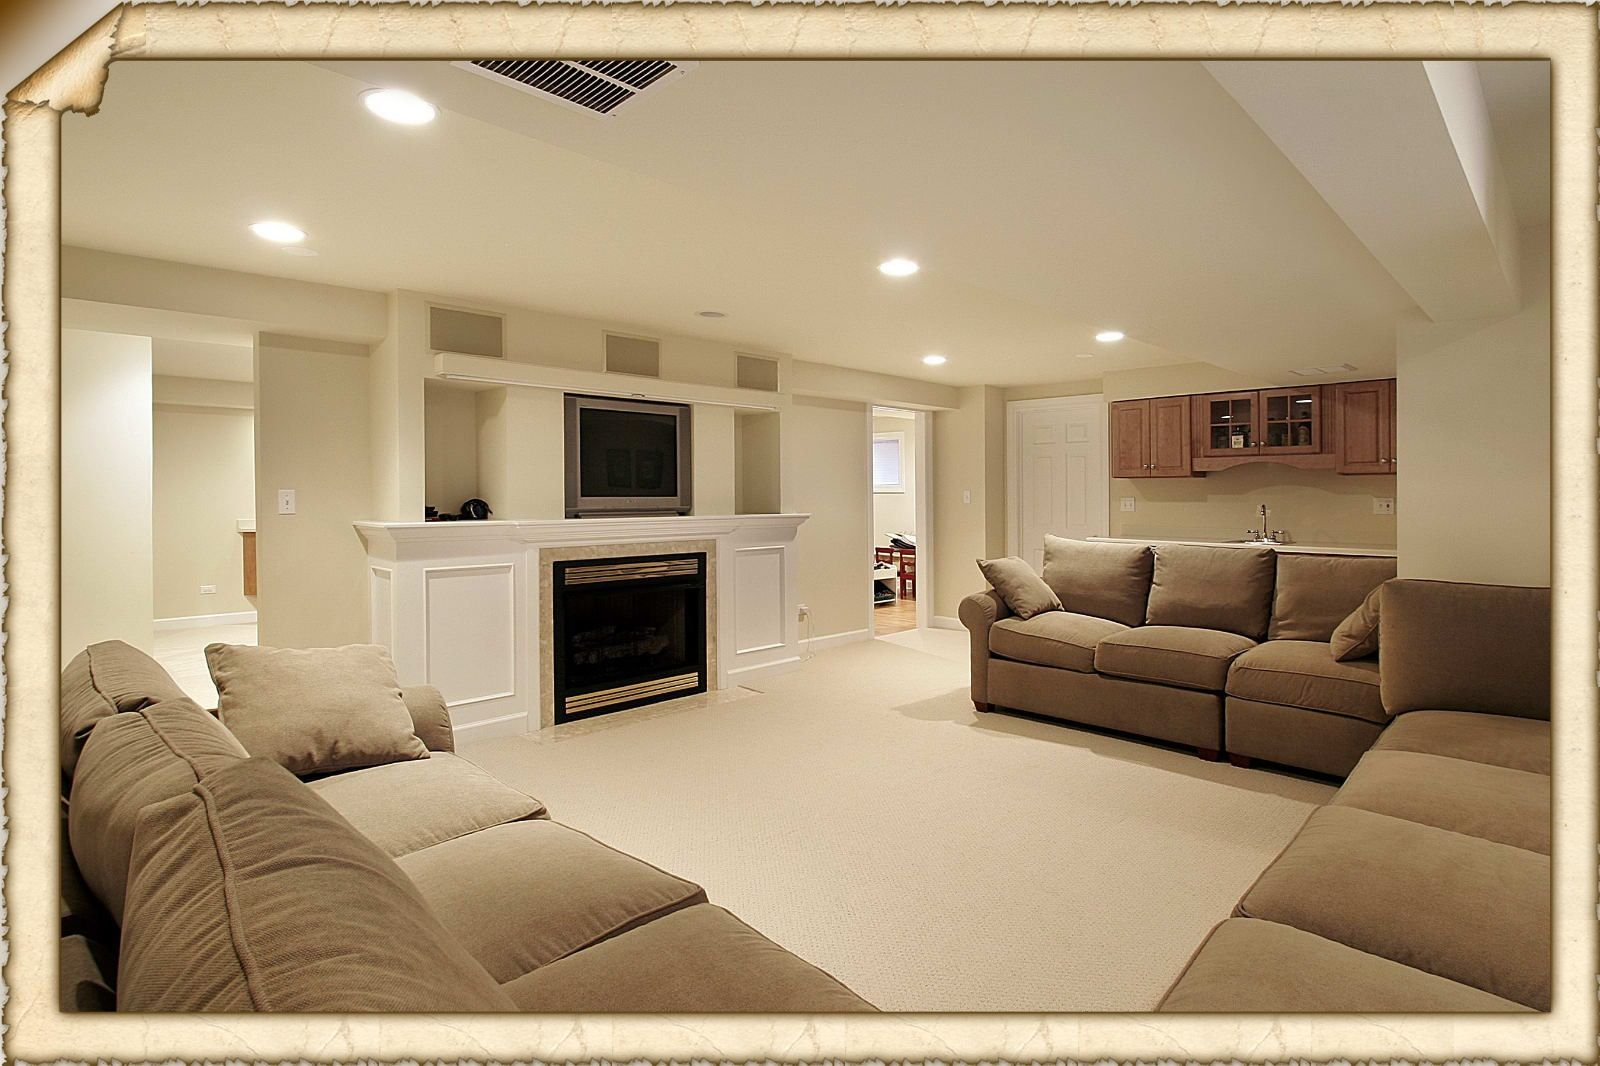 best images about basement ideas on pinterest basement ideas finished basement ideas for kids - Finished Basement Design Ideas